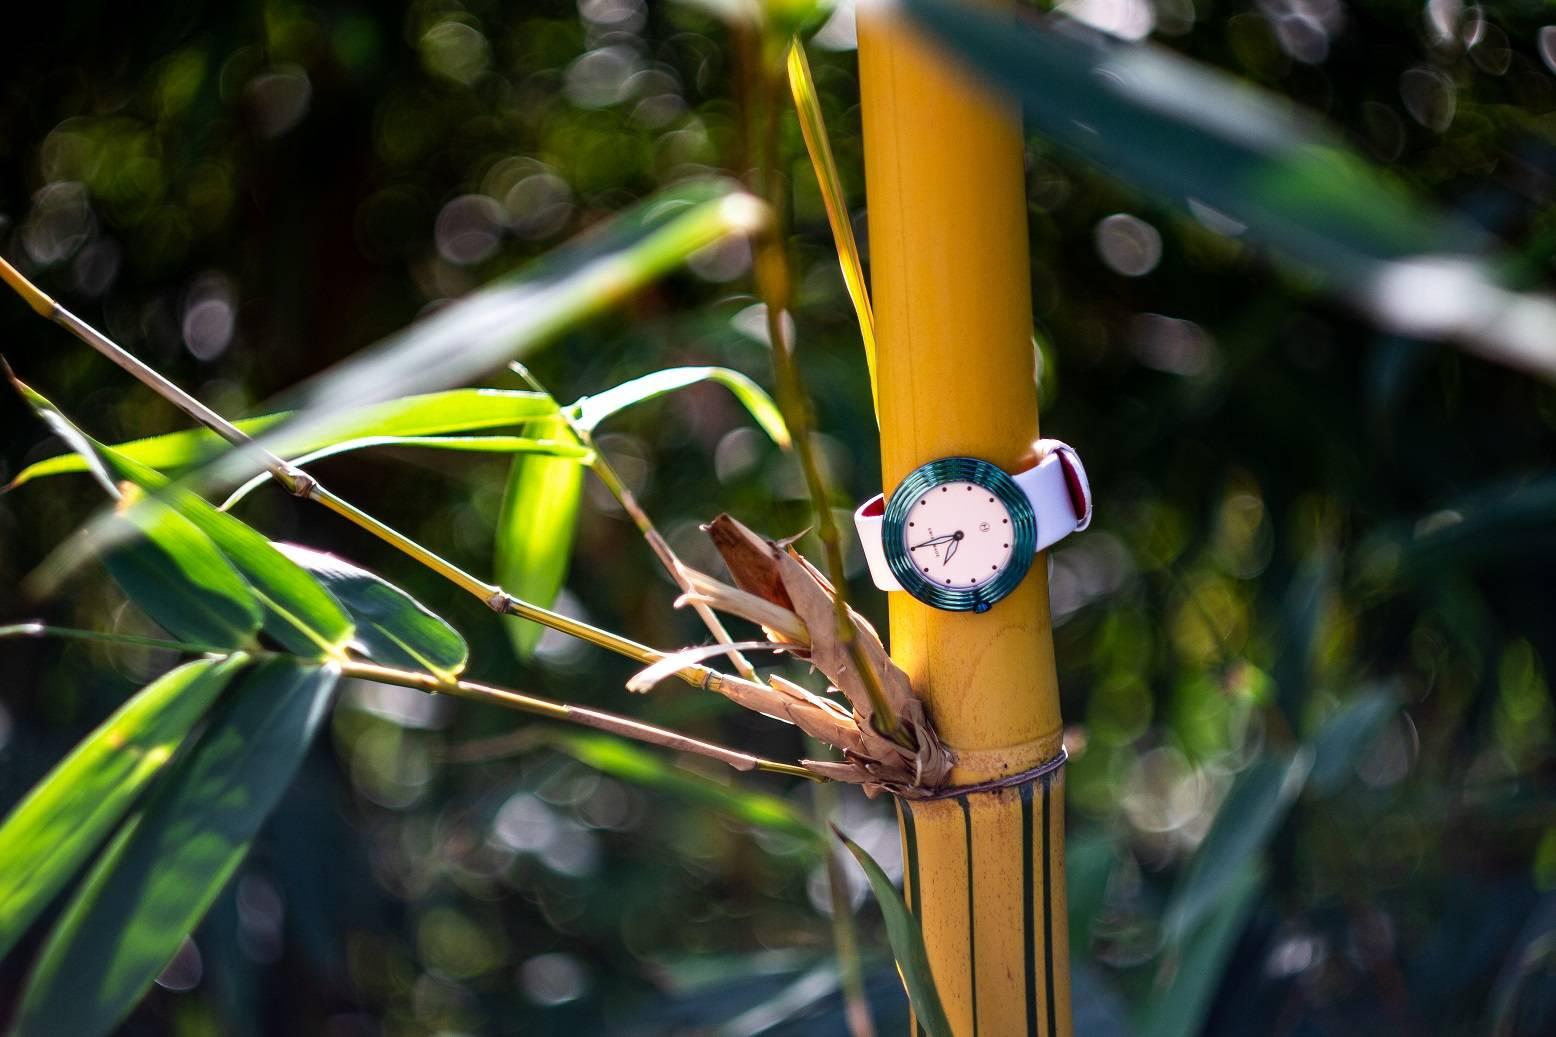 White and Green Streamliner wrapped around a bamboo tree